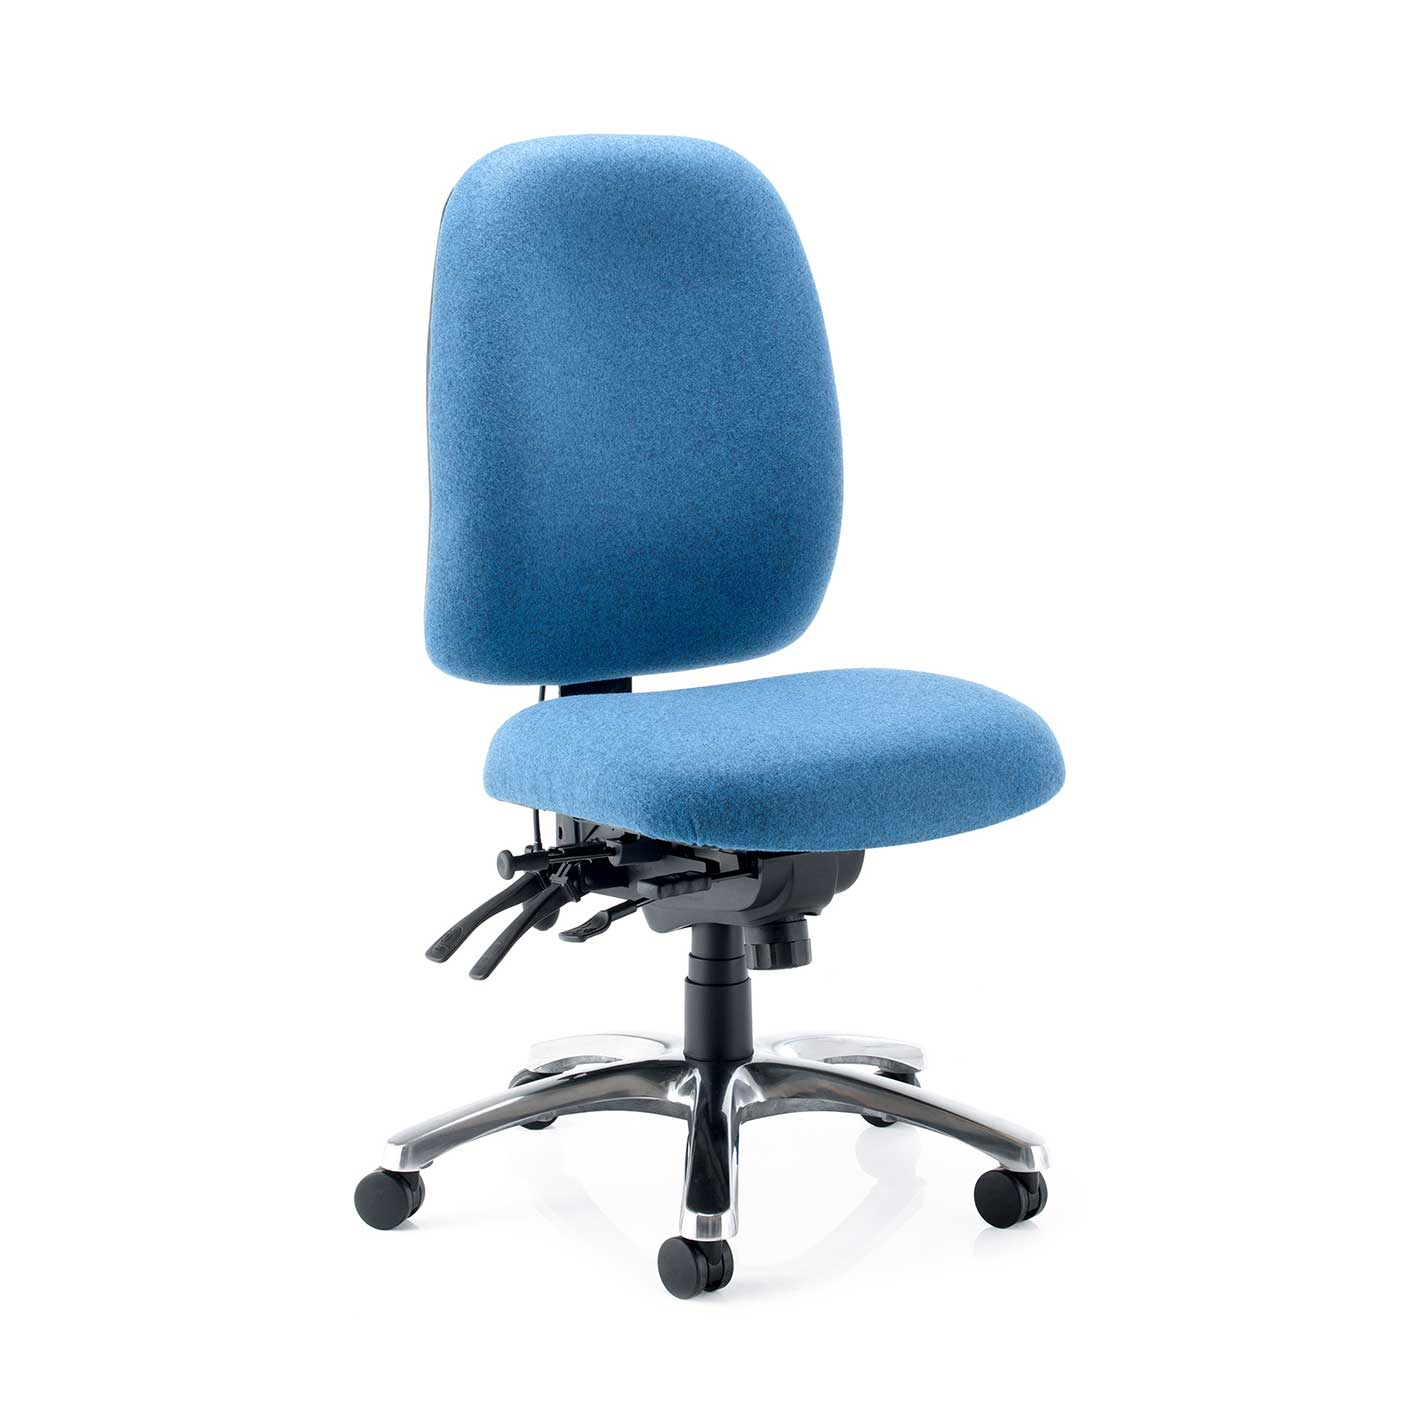 blue stellar posture chair with polished chrome base and no arms